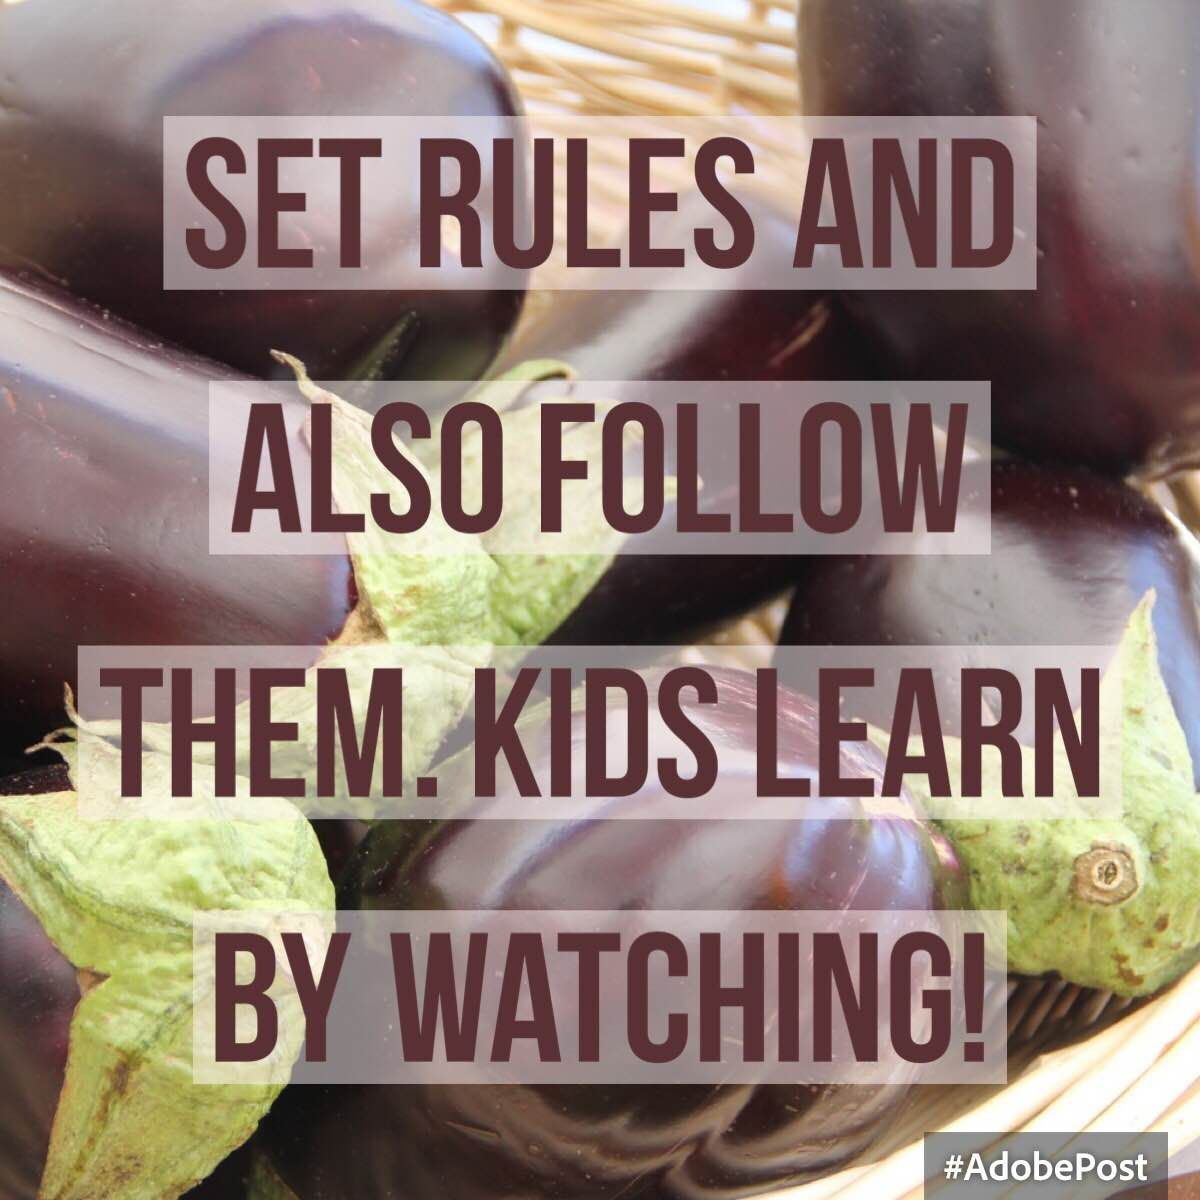 Healthy tips for healthy kids. #growhealthy #healthykids